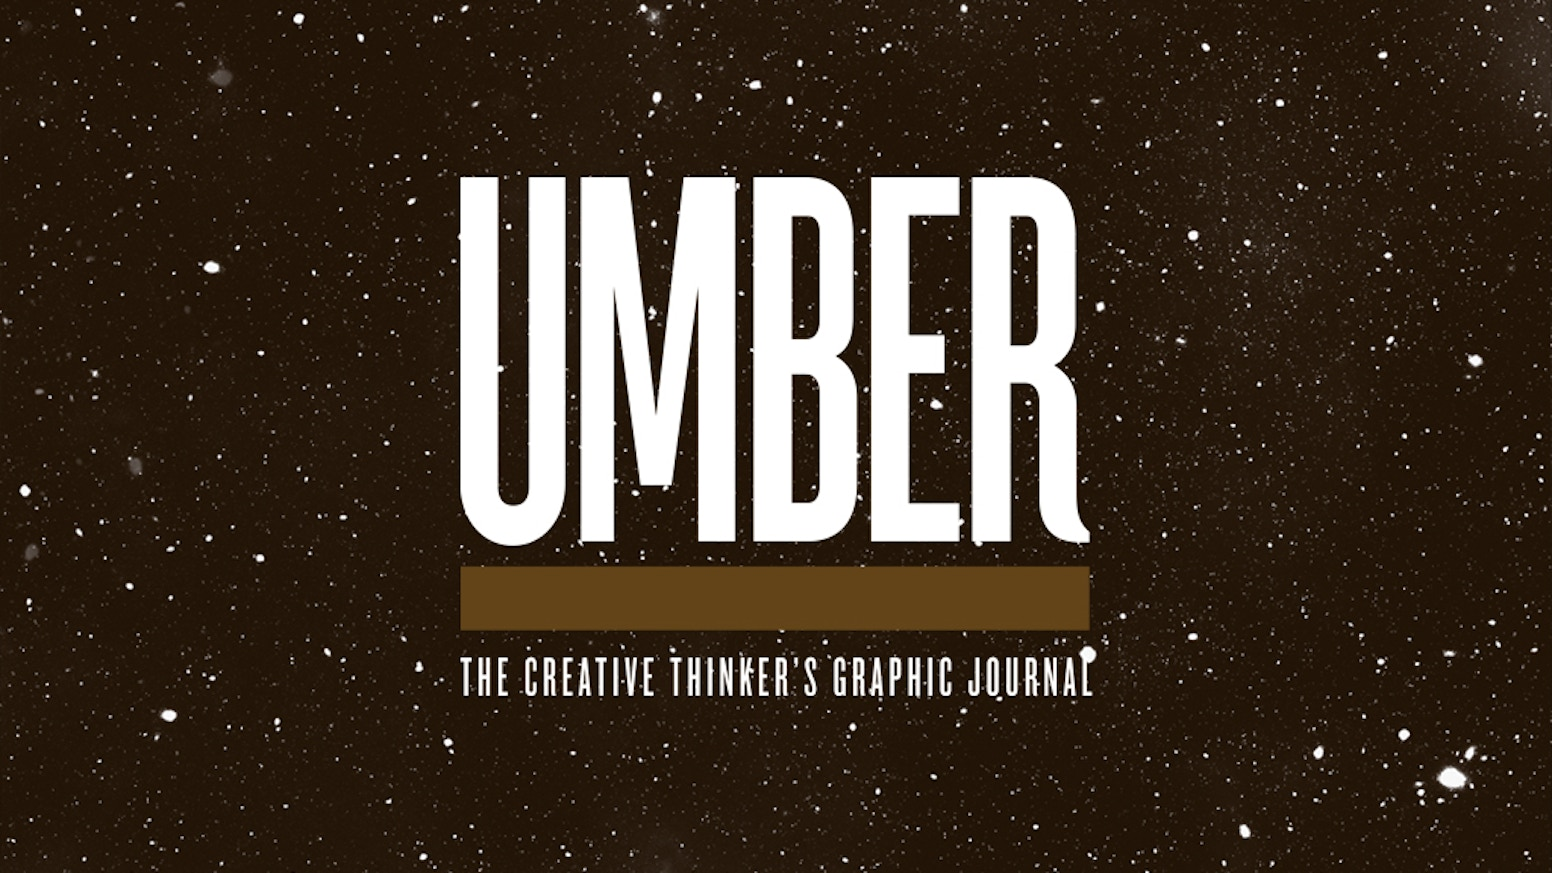 Umber Magazine is the creative thinker's graphic journal. A printed publication that focuses on culture, visual ideas and design.